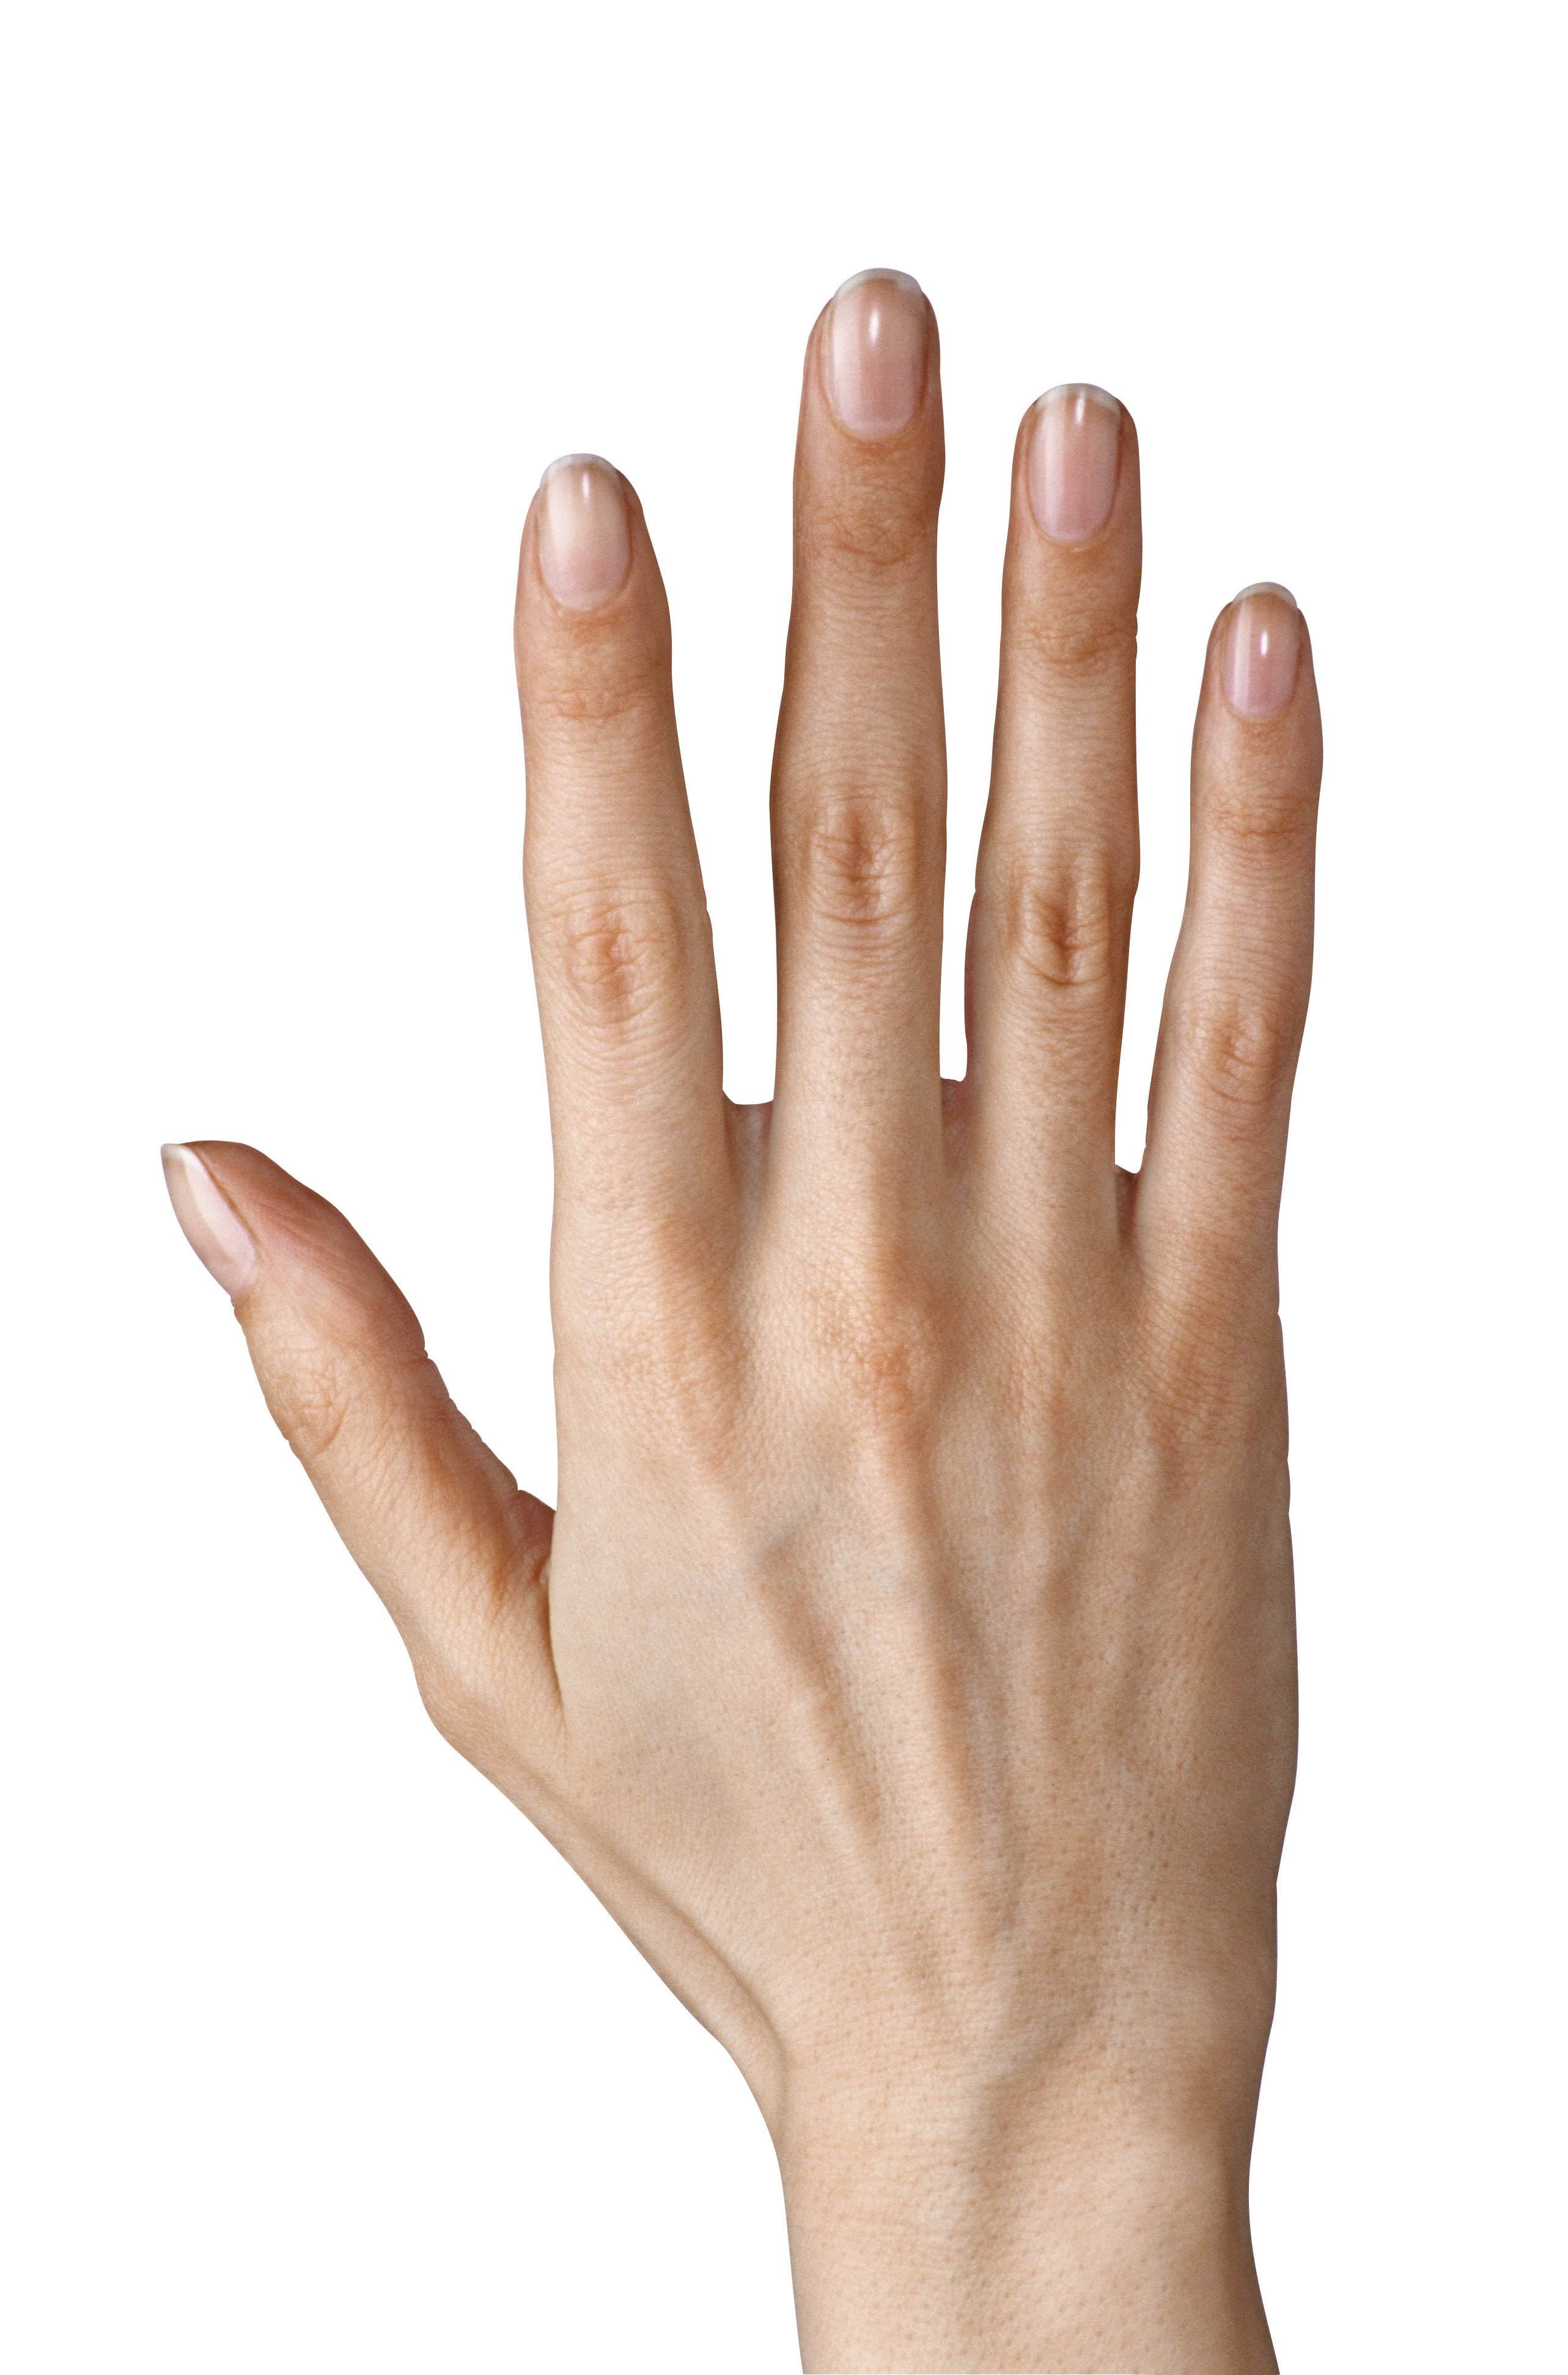 clipart library stock Hand showing fingers png. High five clipart.